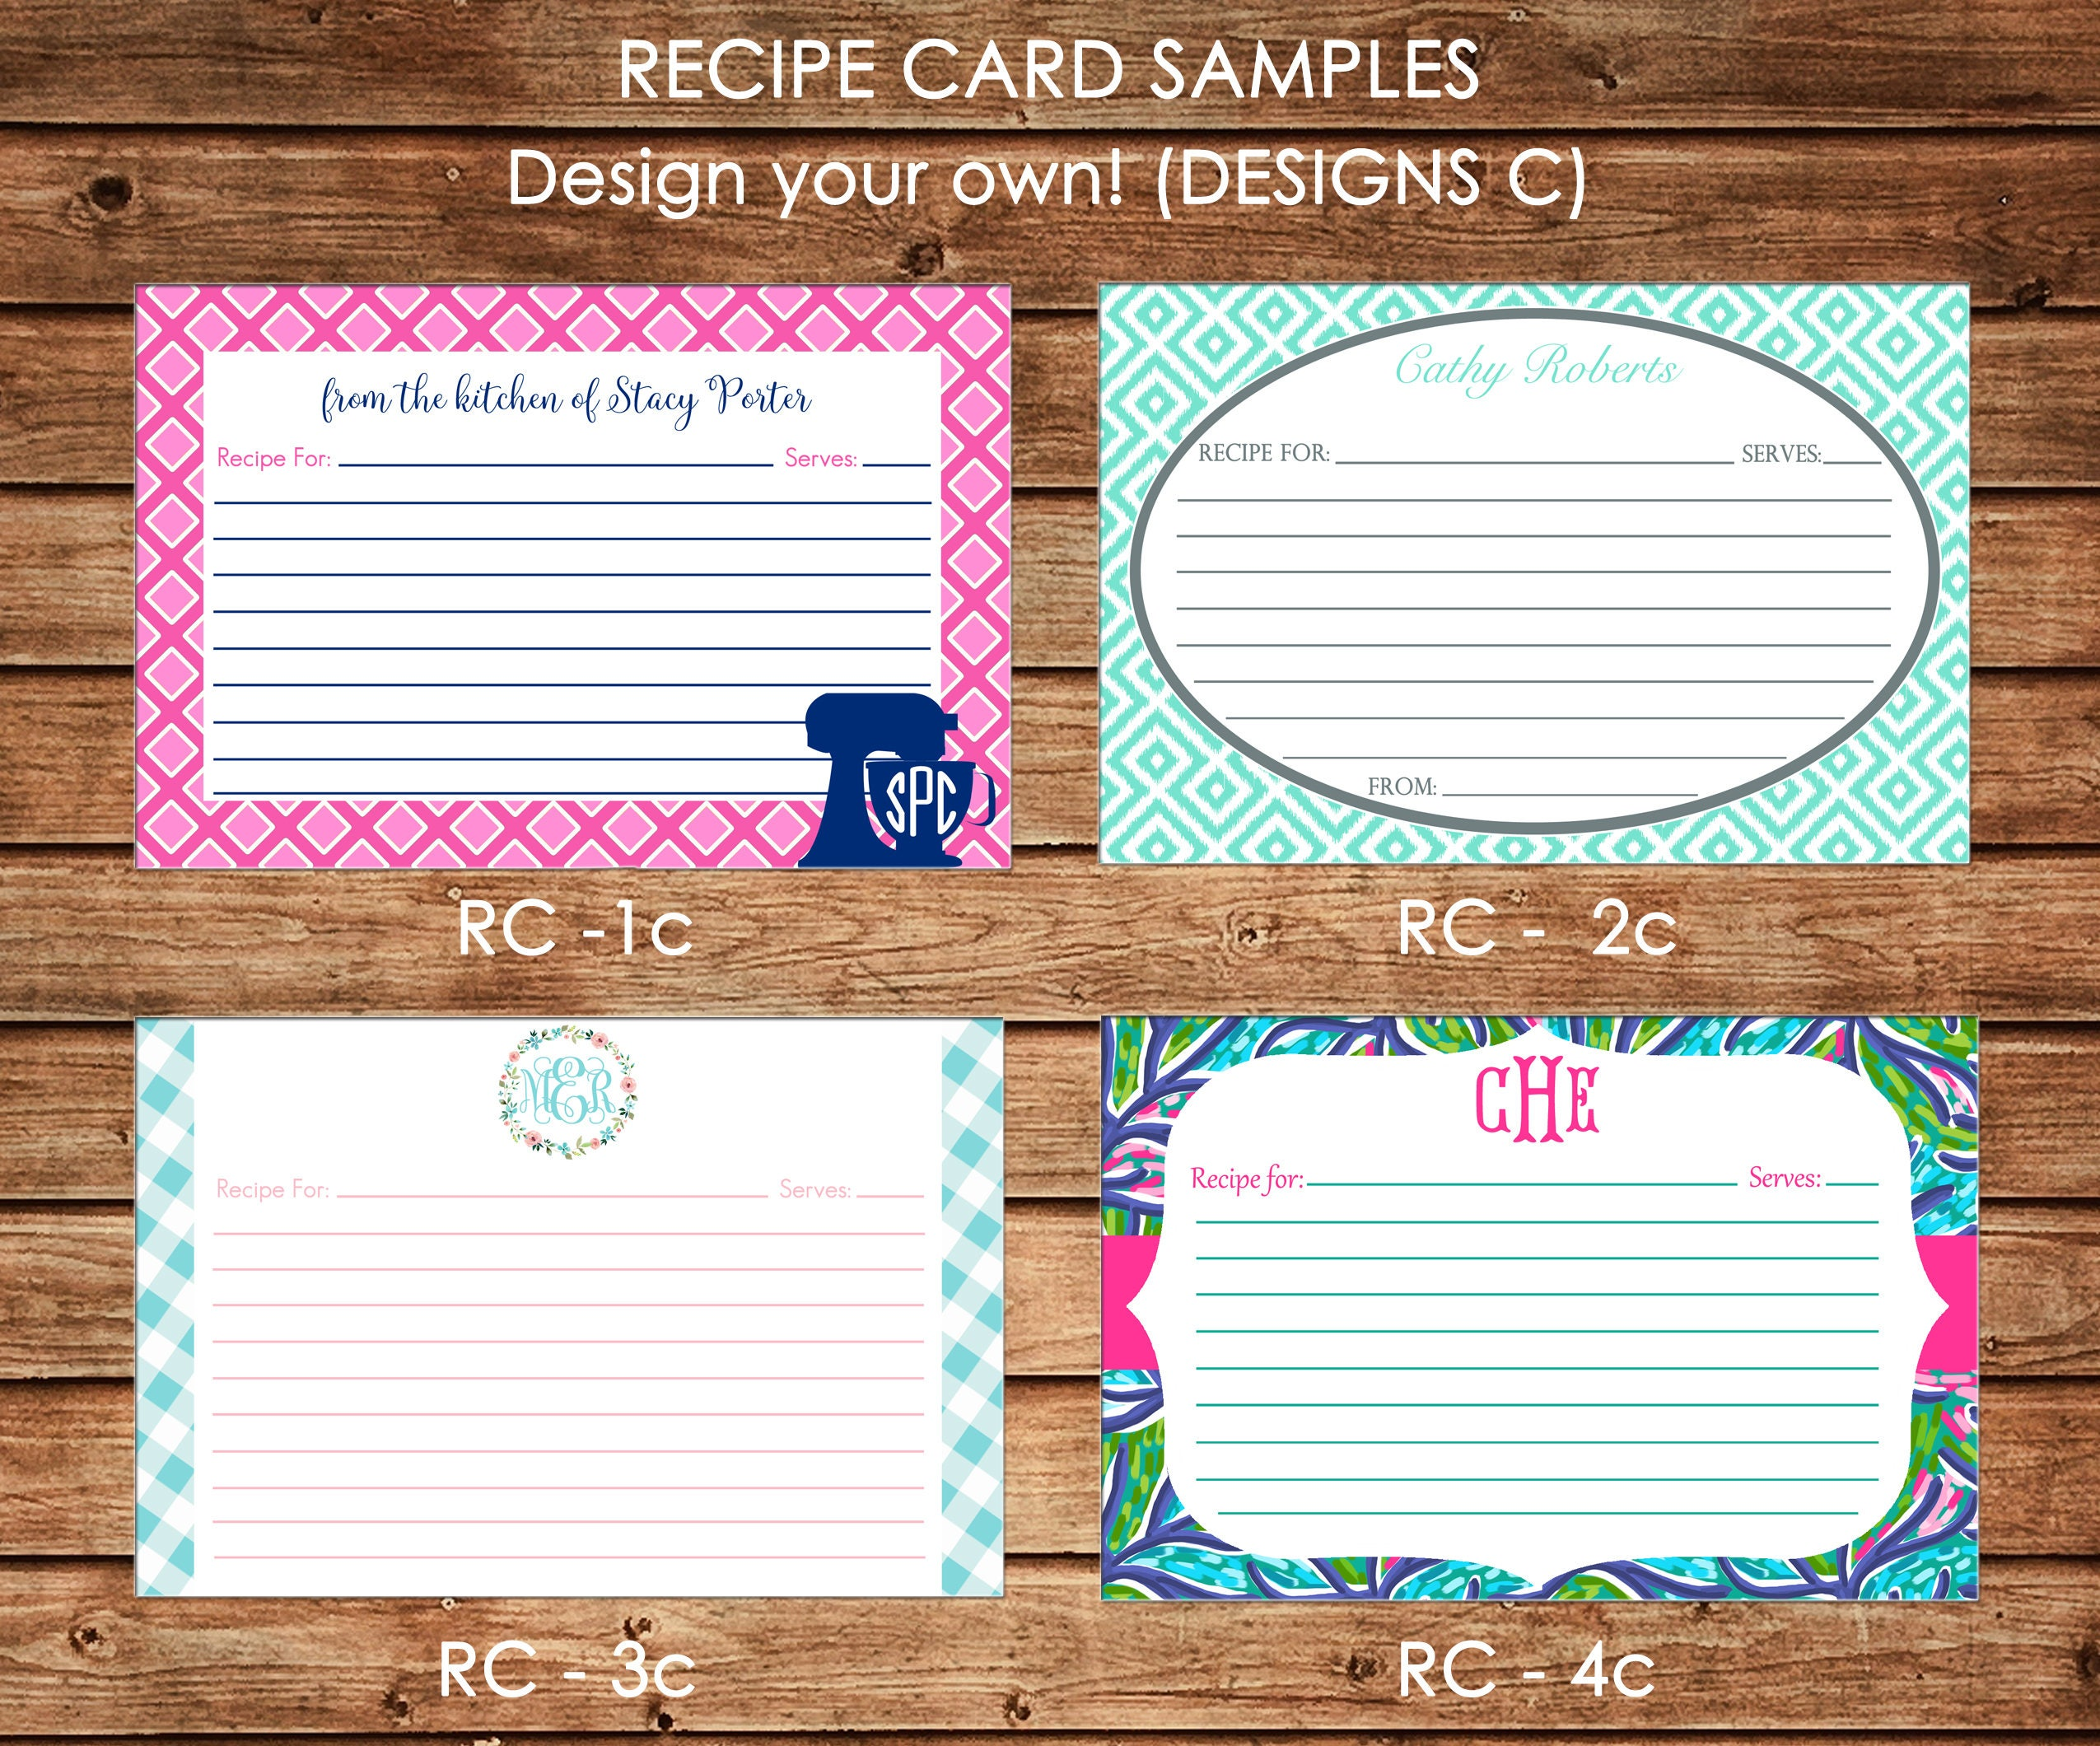 personalized recipe cards design your own choose one design